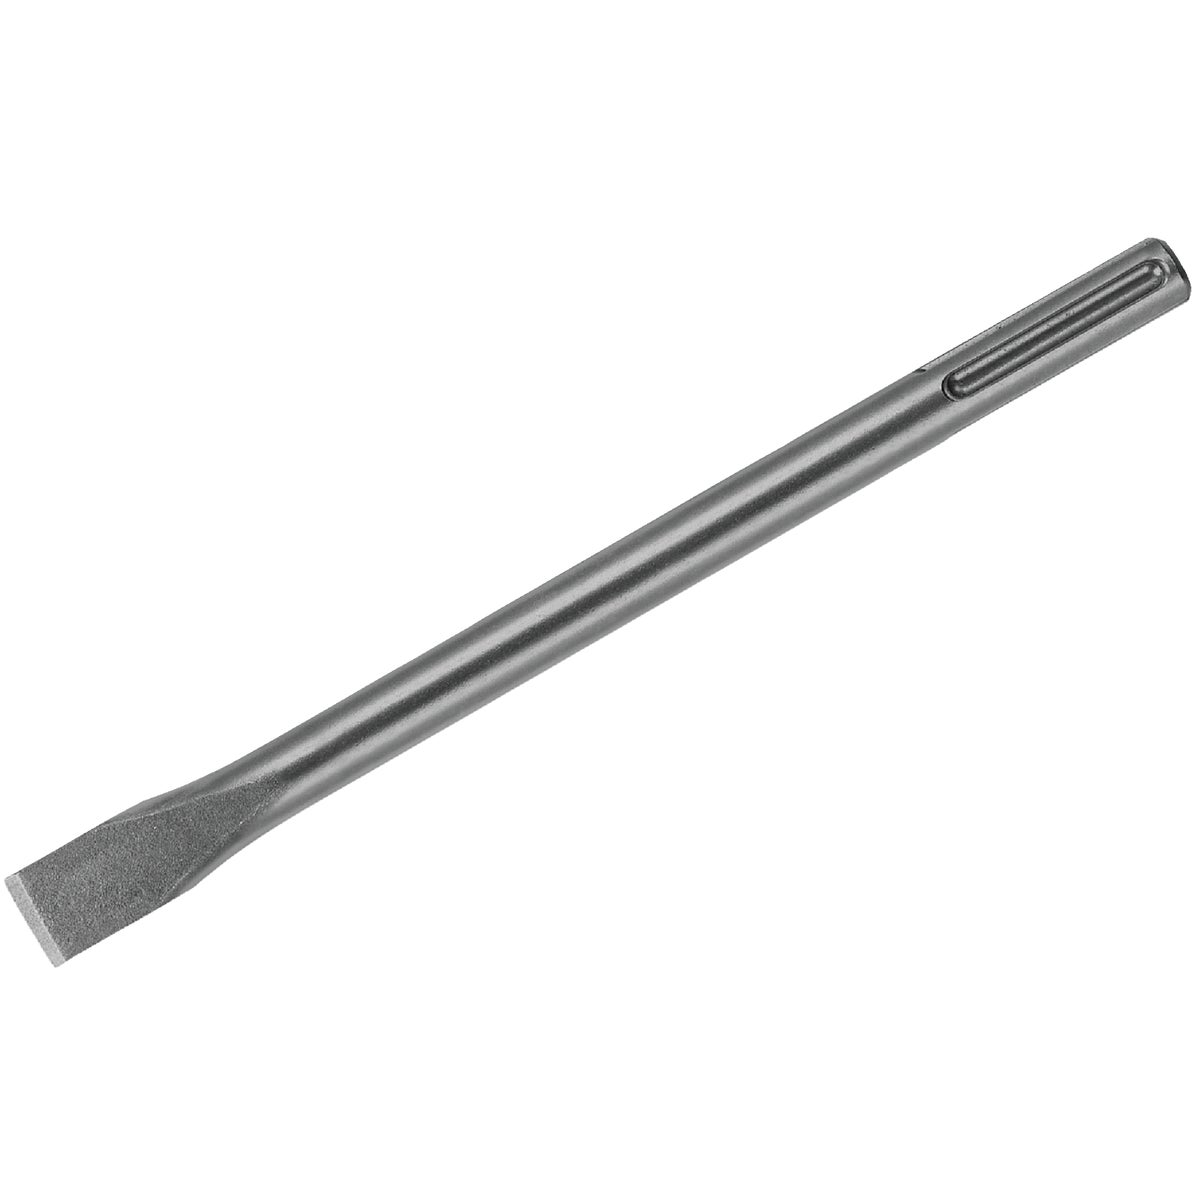 1X12 SDS COLD CHISEL - DW5834 by DeWalt